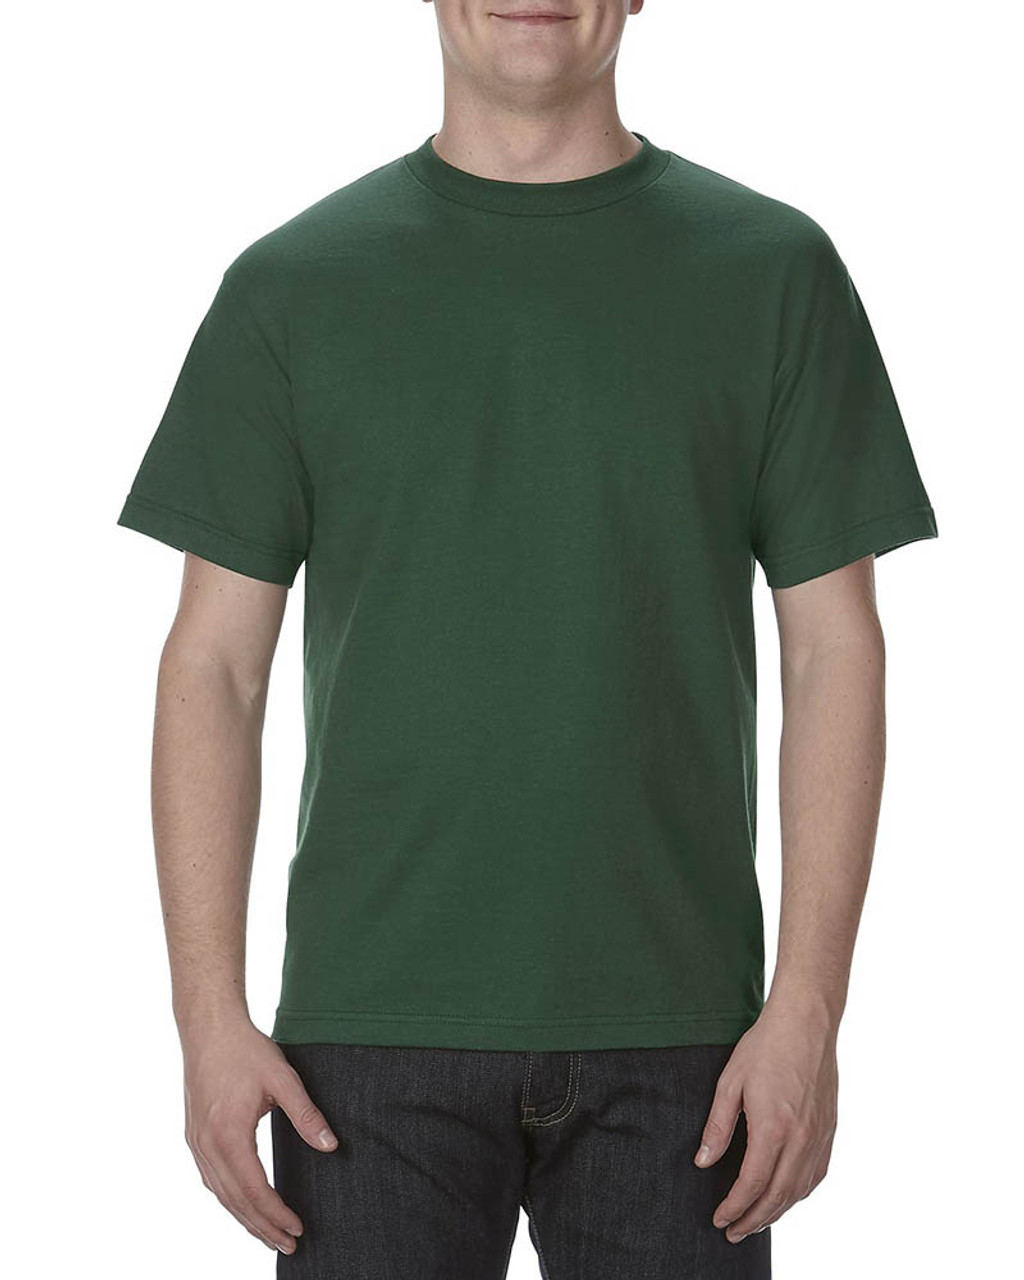 Forest Green - AL1301 Alstyle Adult 6.0 oz., 100% Cotton T-Shirt   BlankClothing.ca